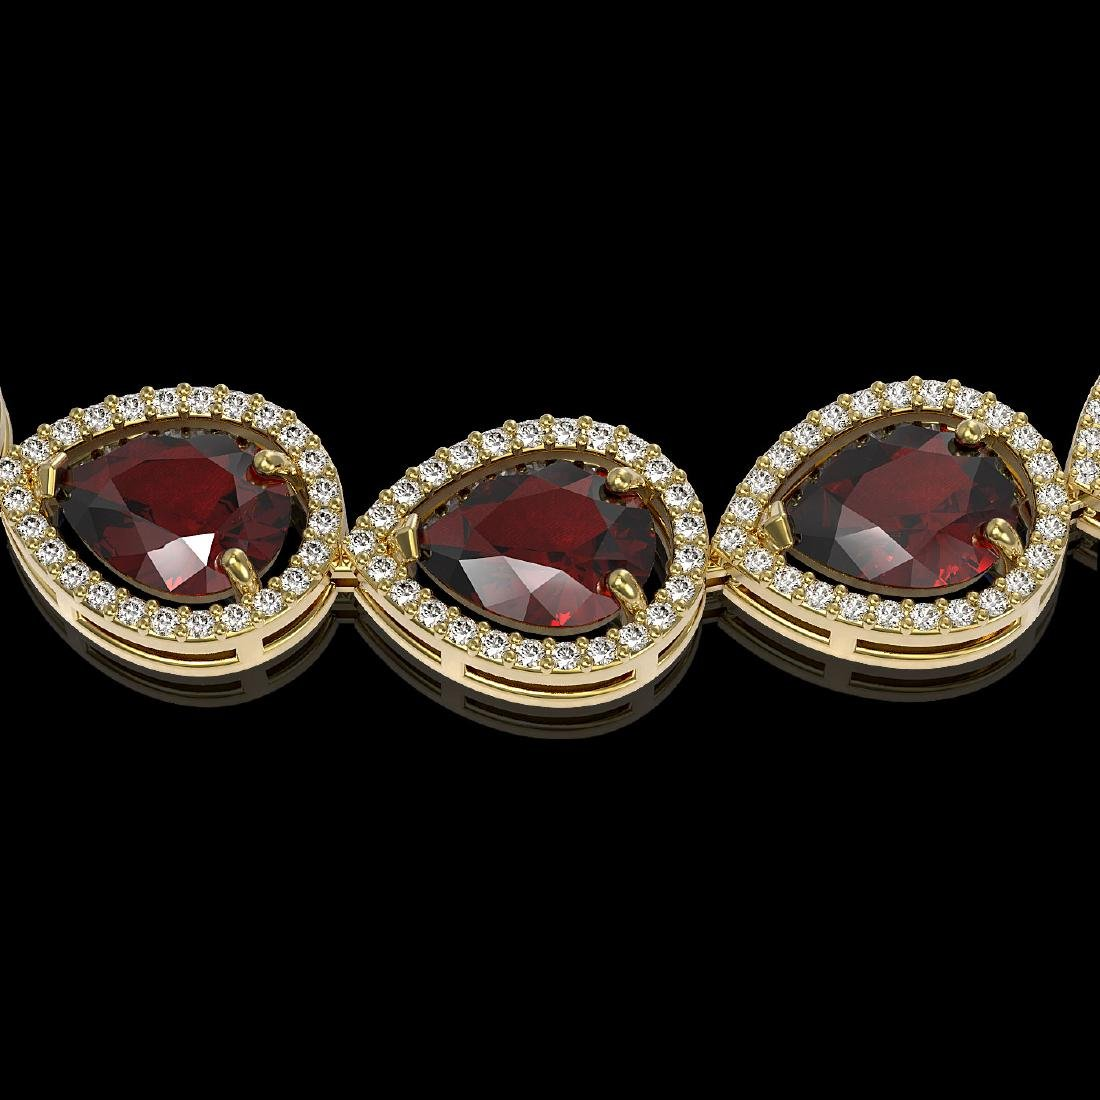 36.8 CTW Garnet & Diamond Halo Necklace 10K Yellow Gold - 3